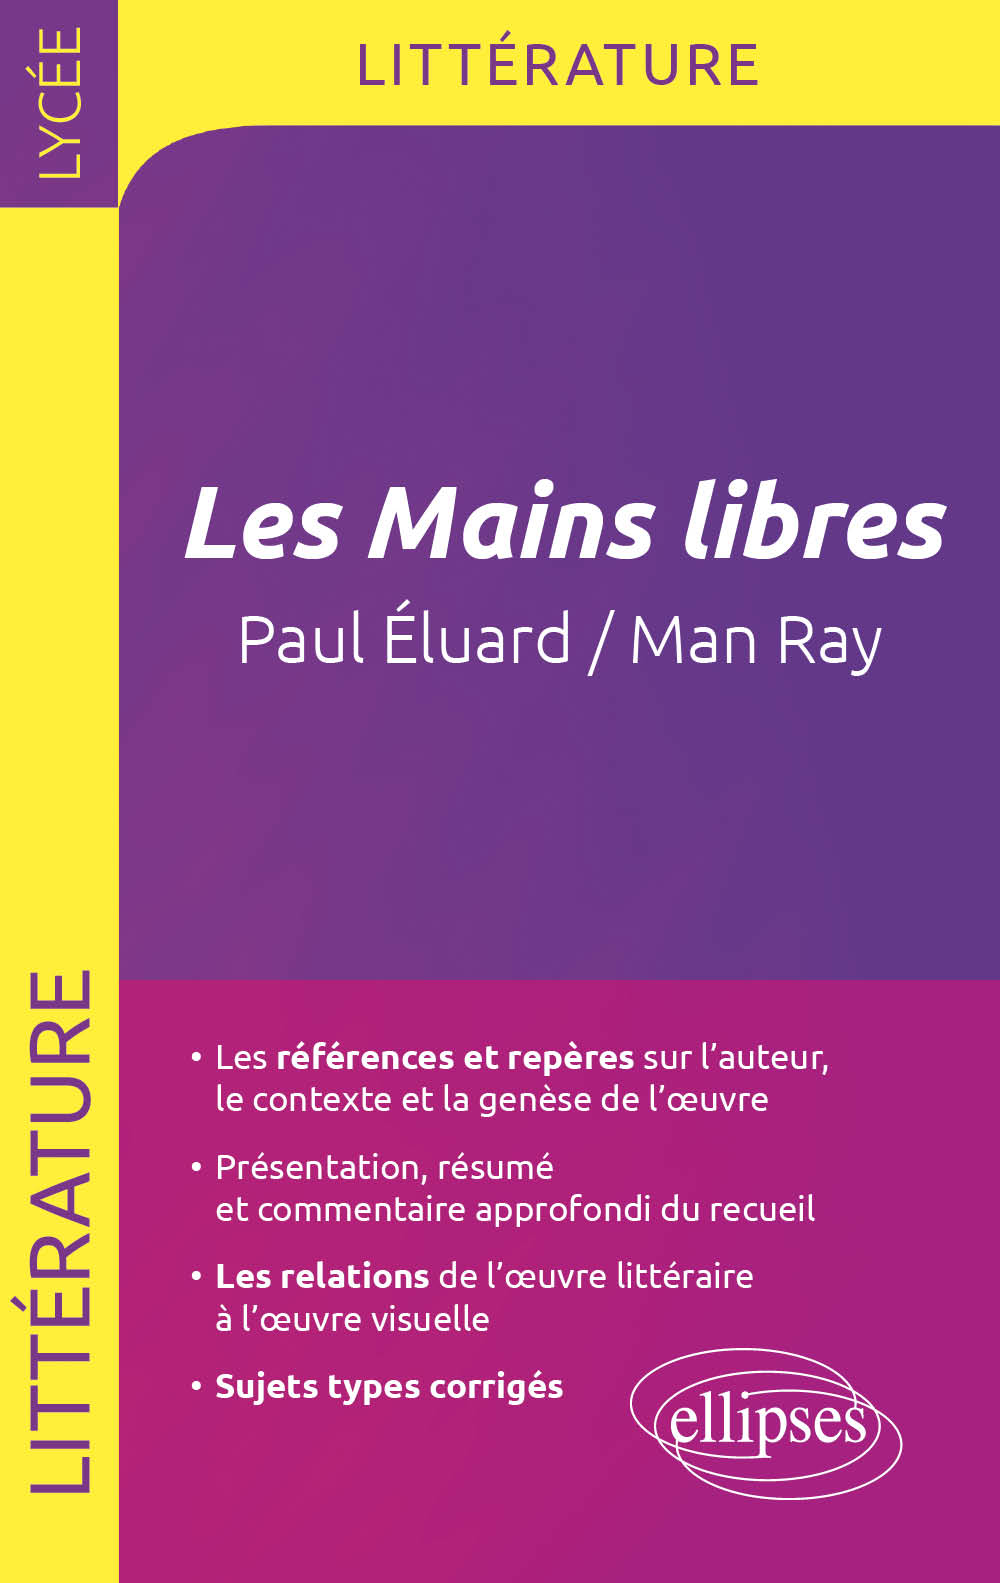 Les Mains libres, Paul Eluard / Man Ray